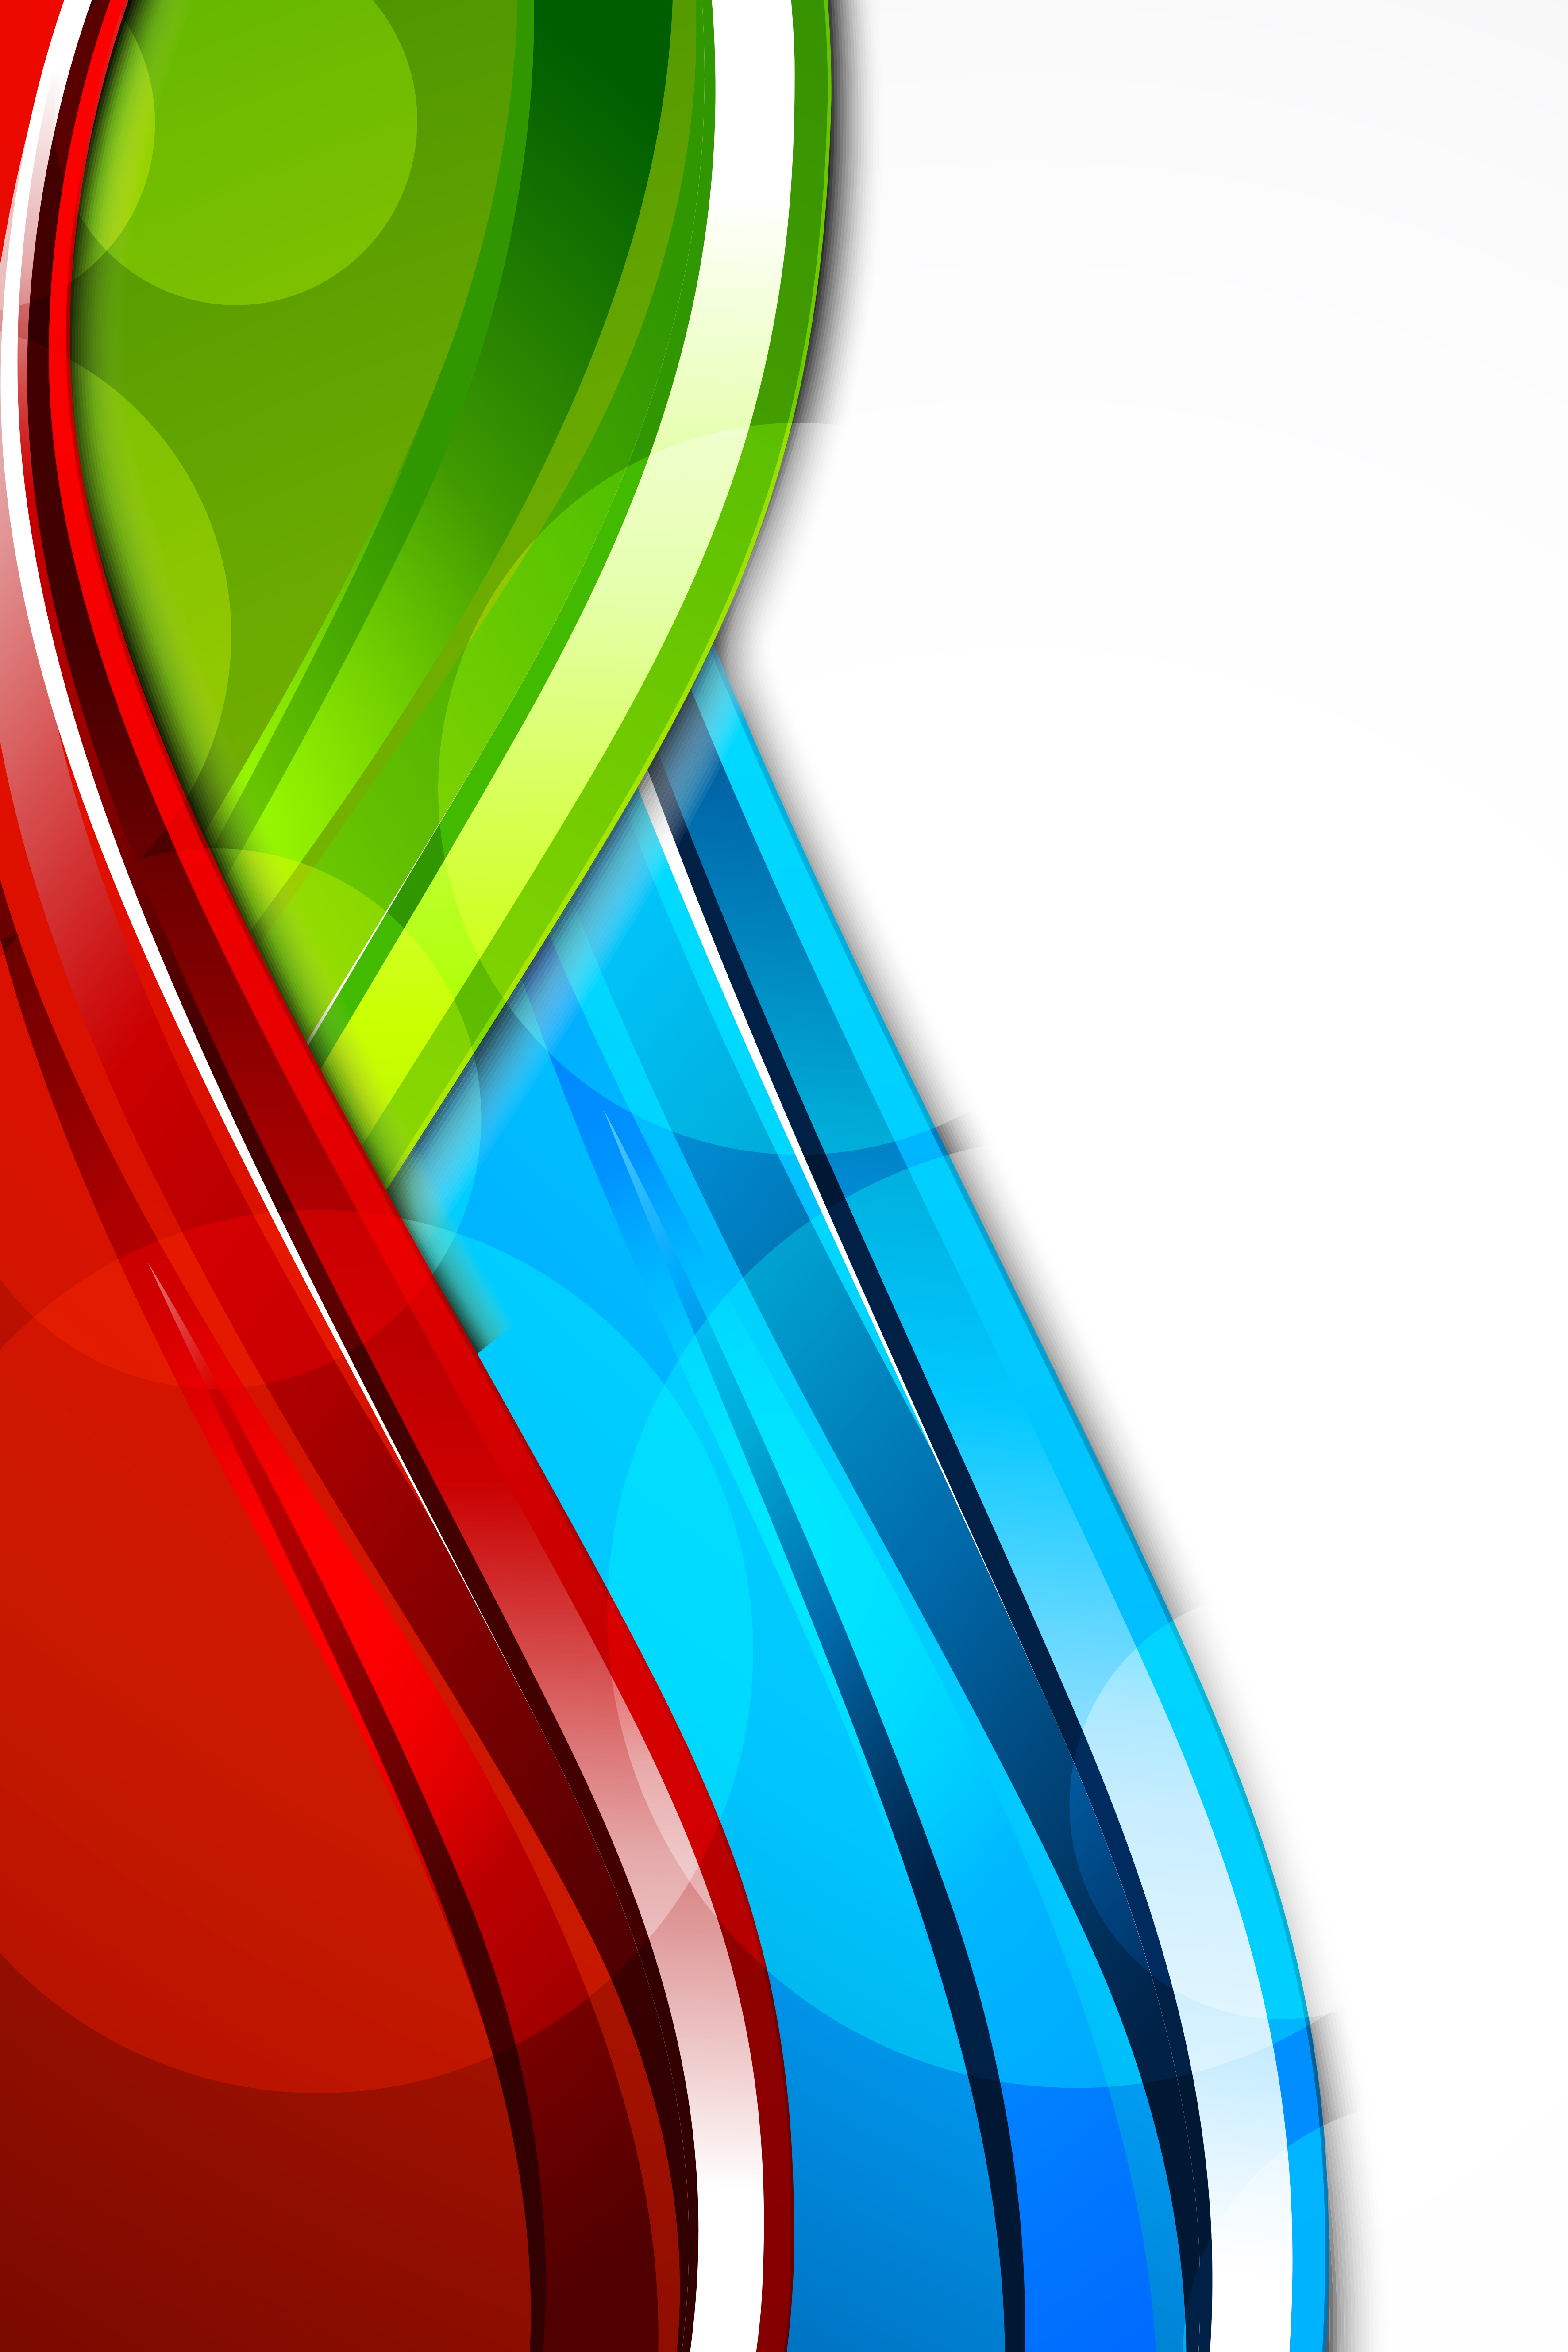 Primary Colors Curve Wave Vector Poster Primary Colors